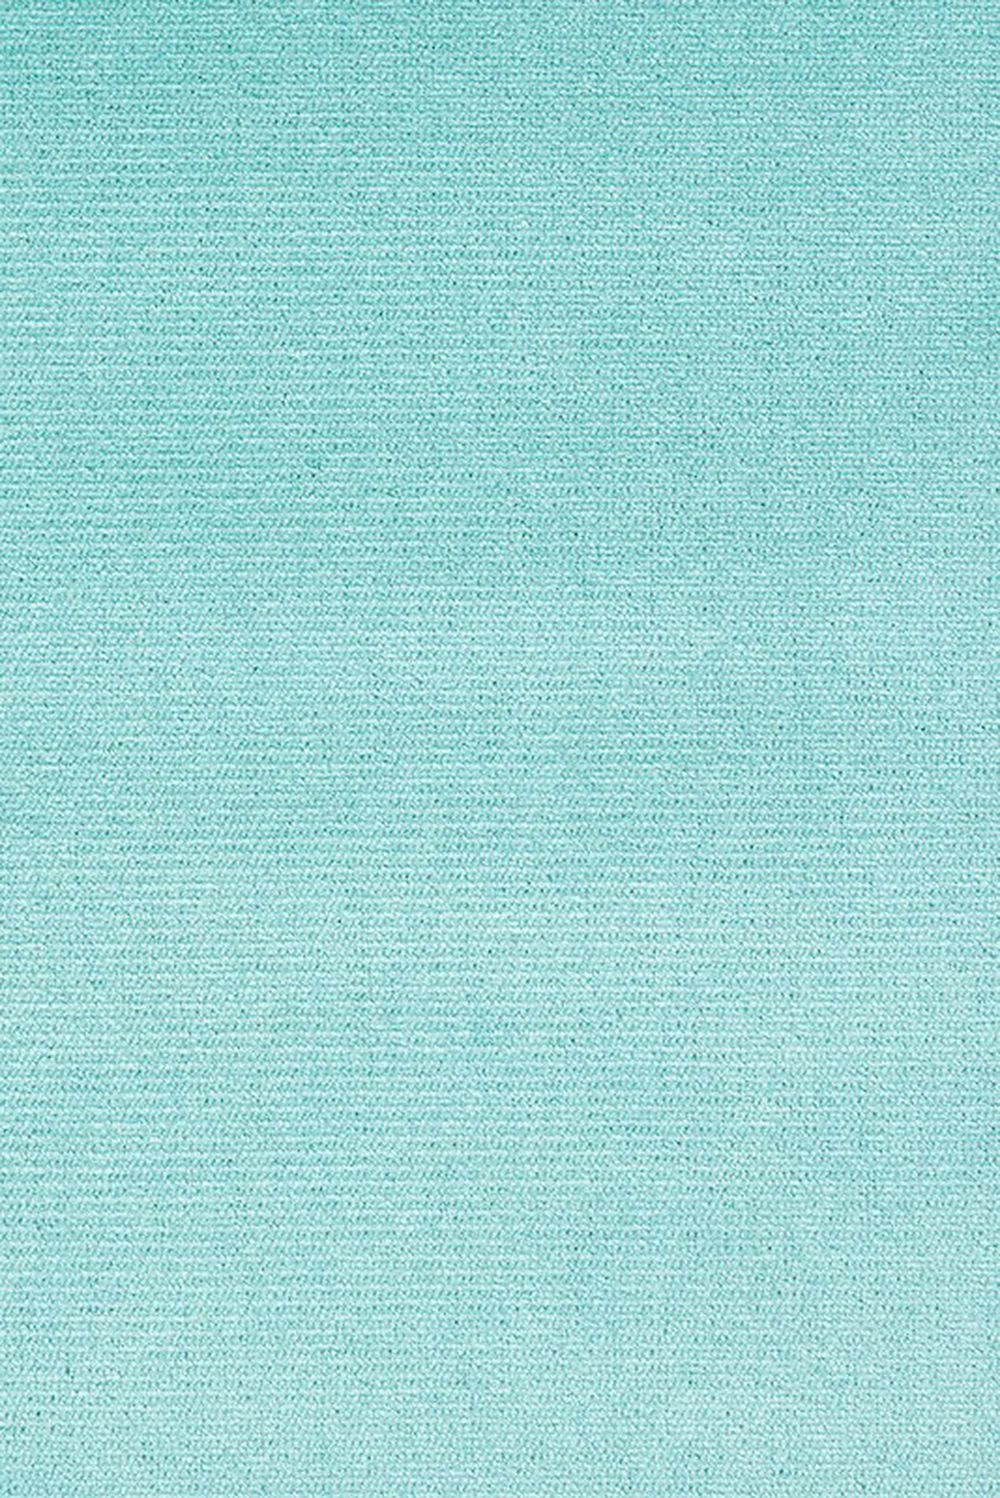 Photo of the fabric South Beach Aqua swatch by Mokum. Use for Upholstery Heavy Duty, Accessory. Style of Plain, Velvet